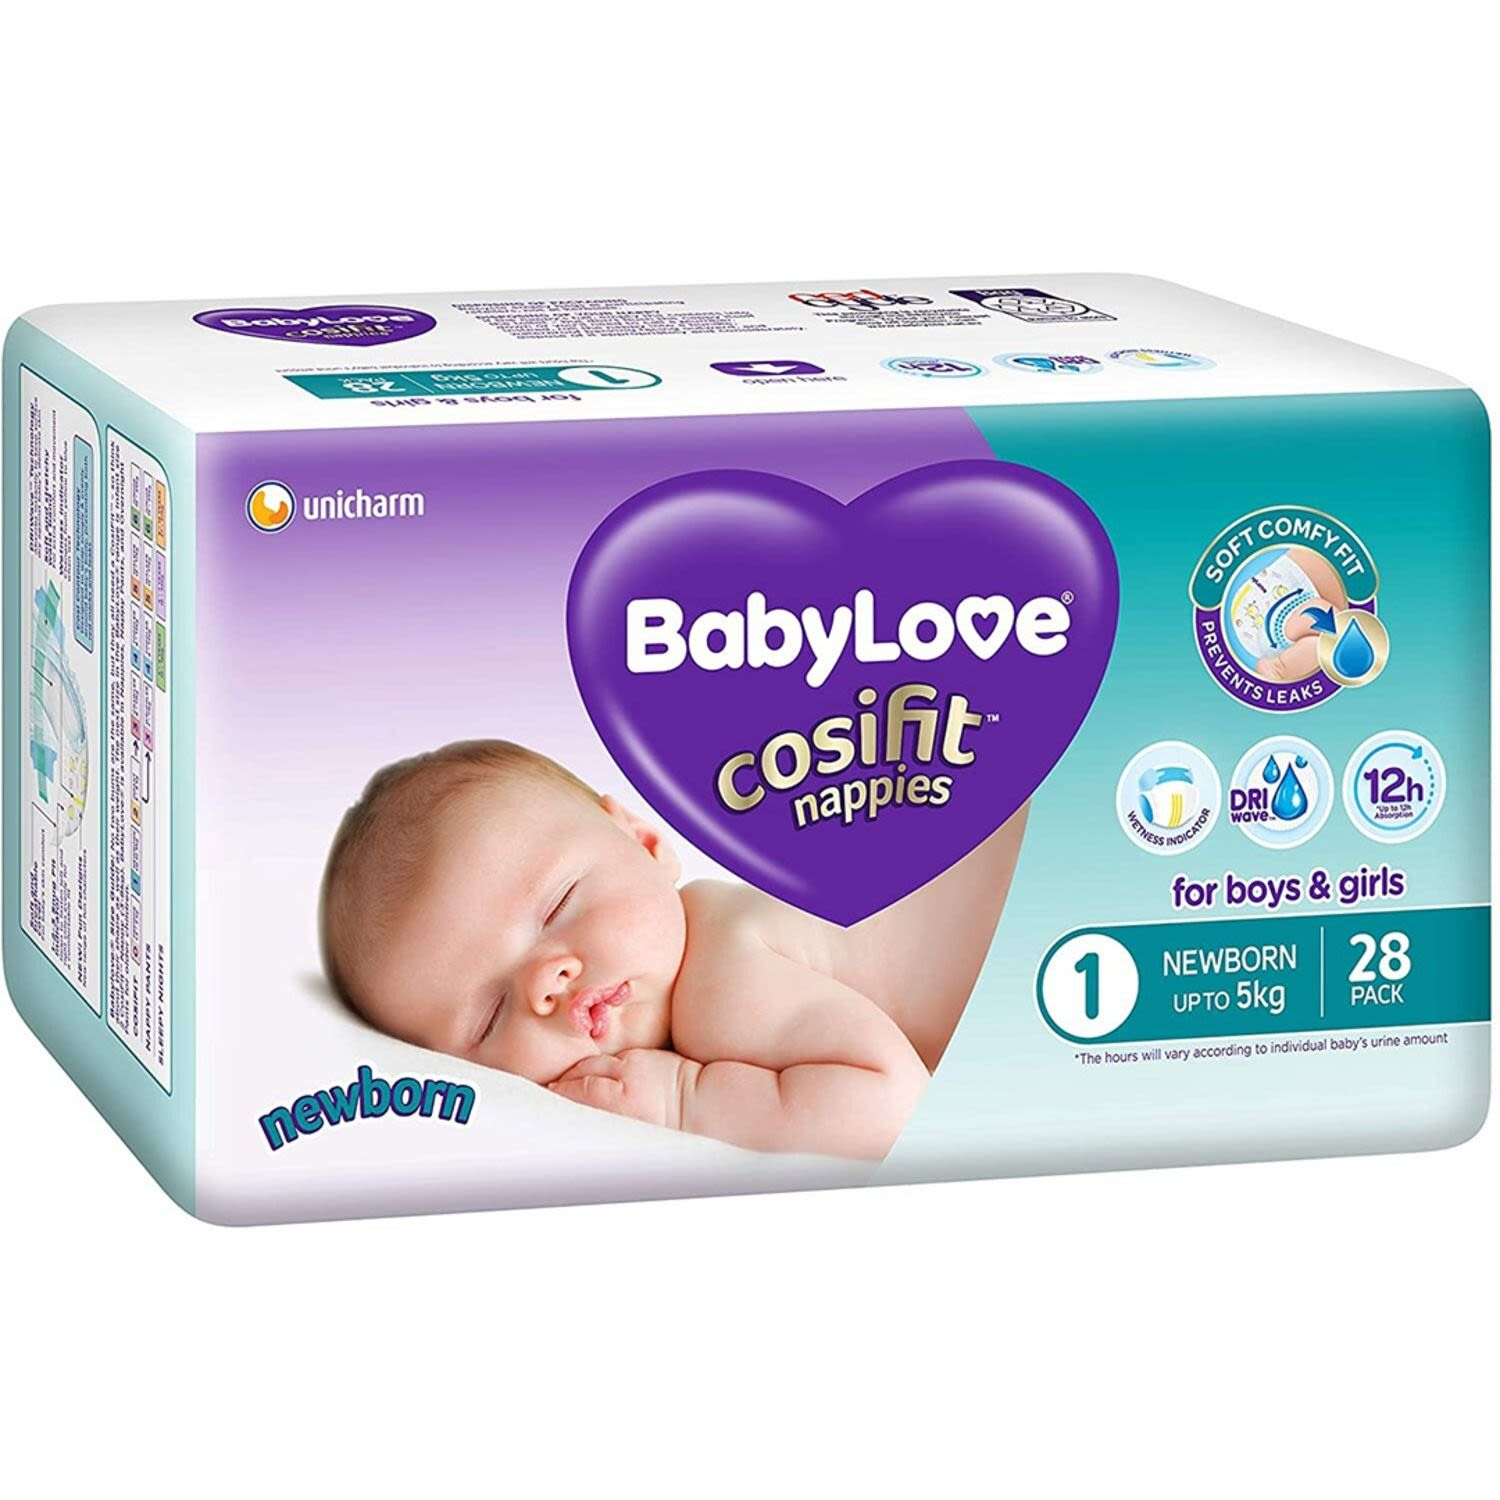 Babylove Cosifit Newborn Nappies, 28 Each